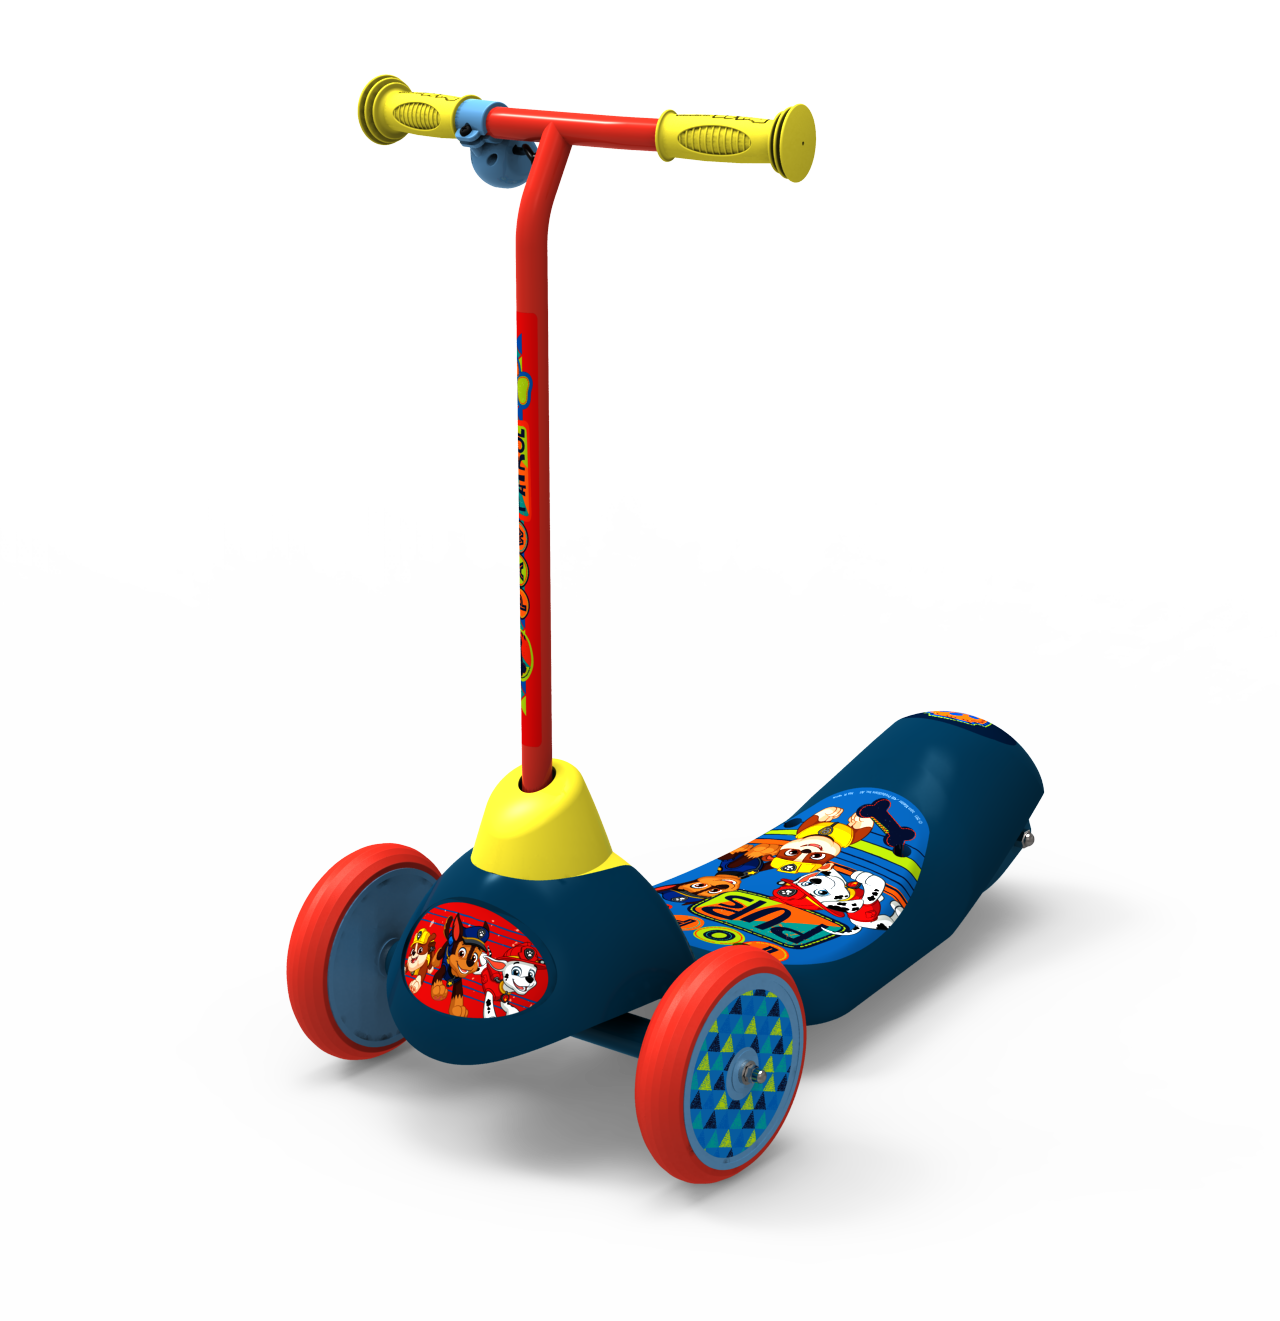 Playwheels Safe Start Paw Patrol Electric 3 Wheel Scooter by Bravo Sports